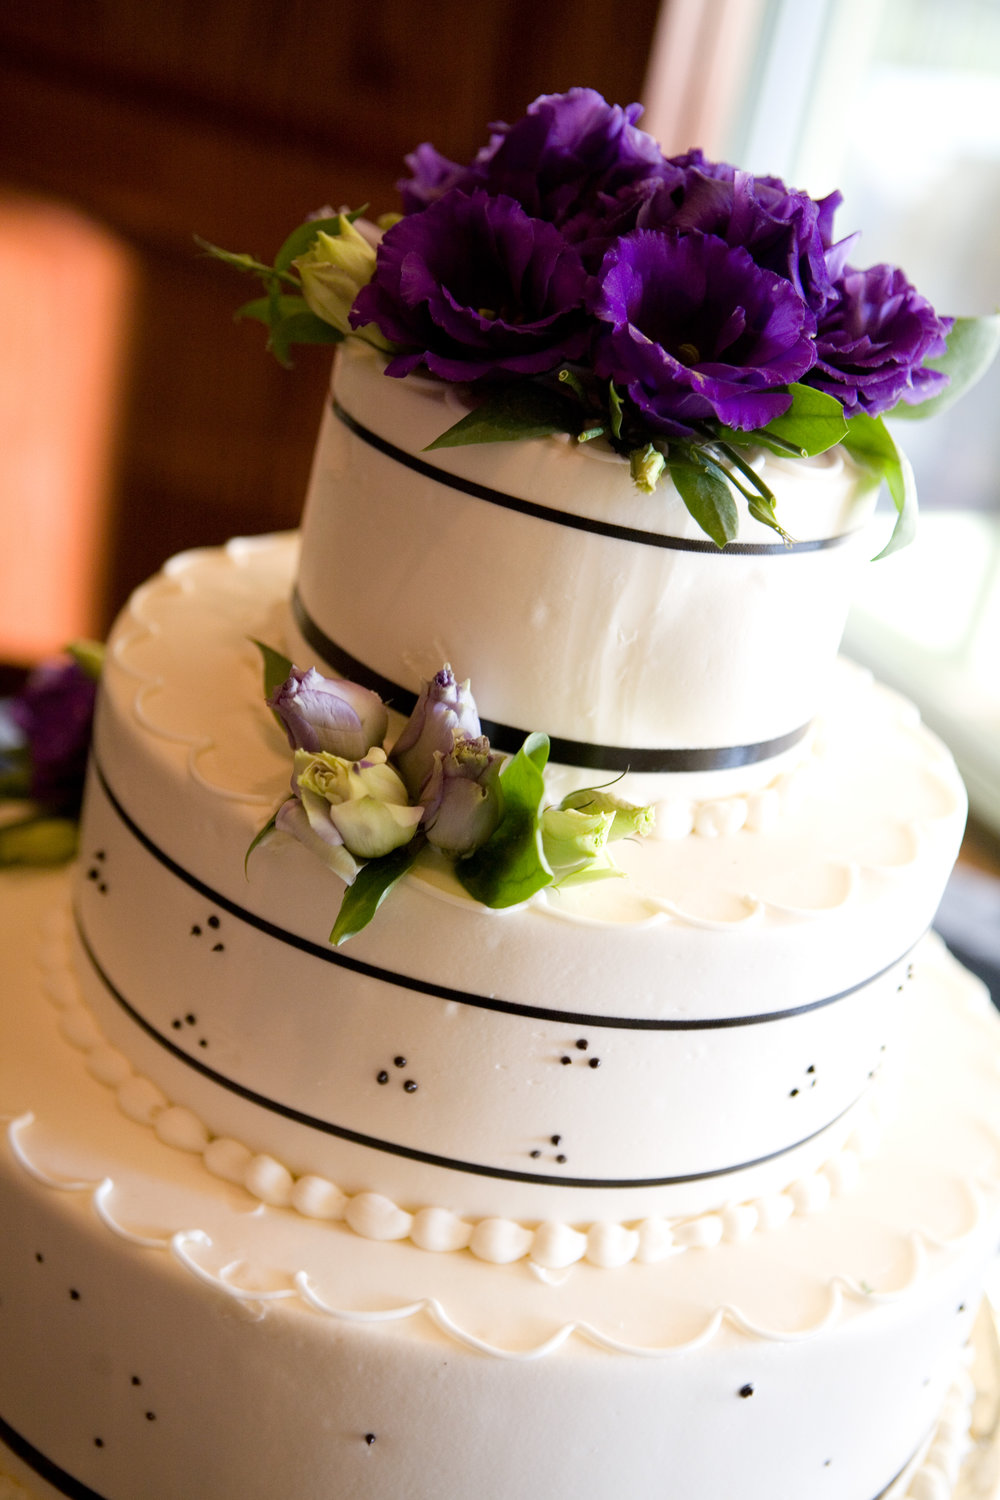 Wedding cake flowers in purple